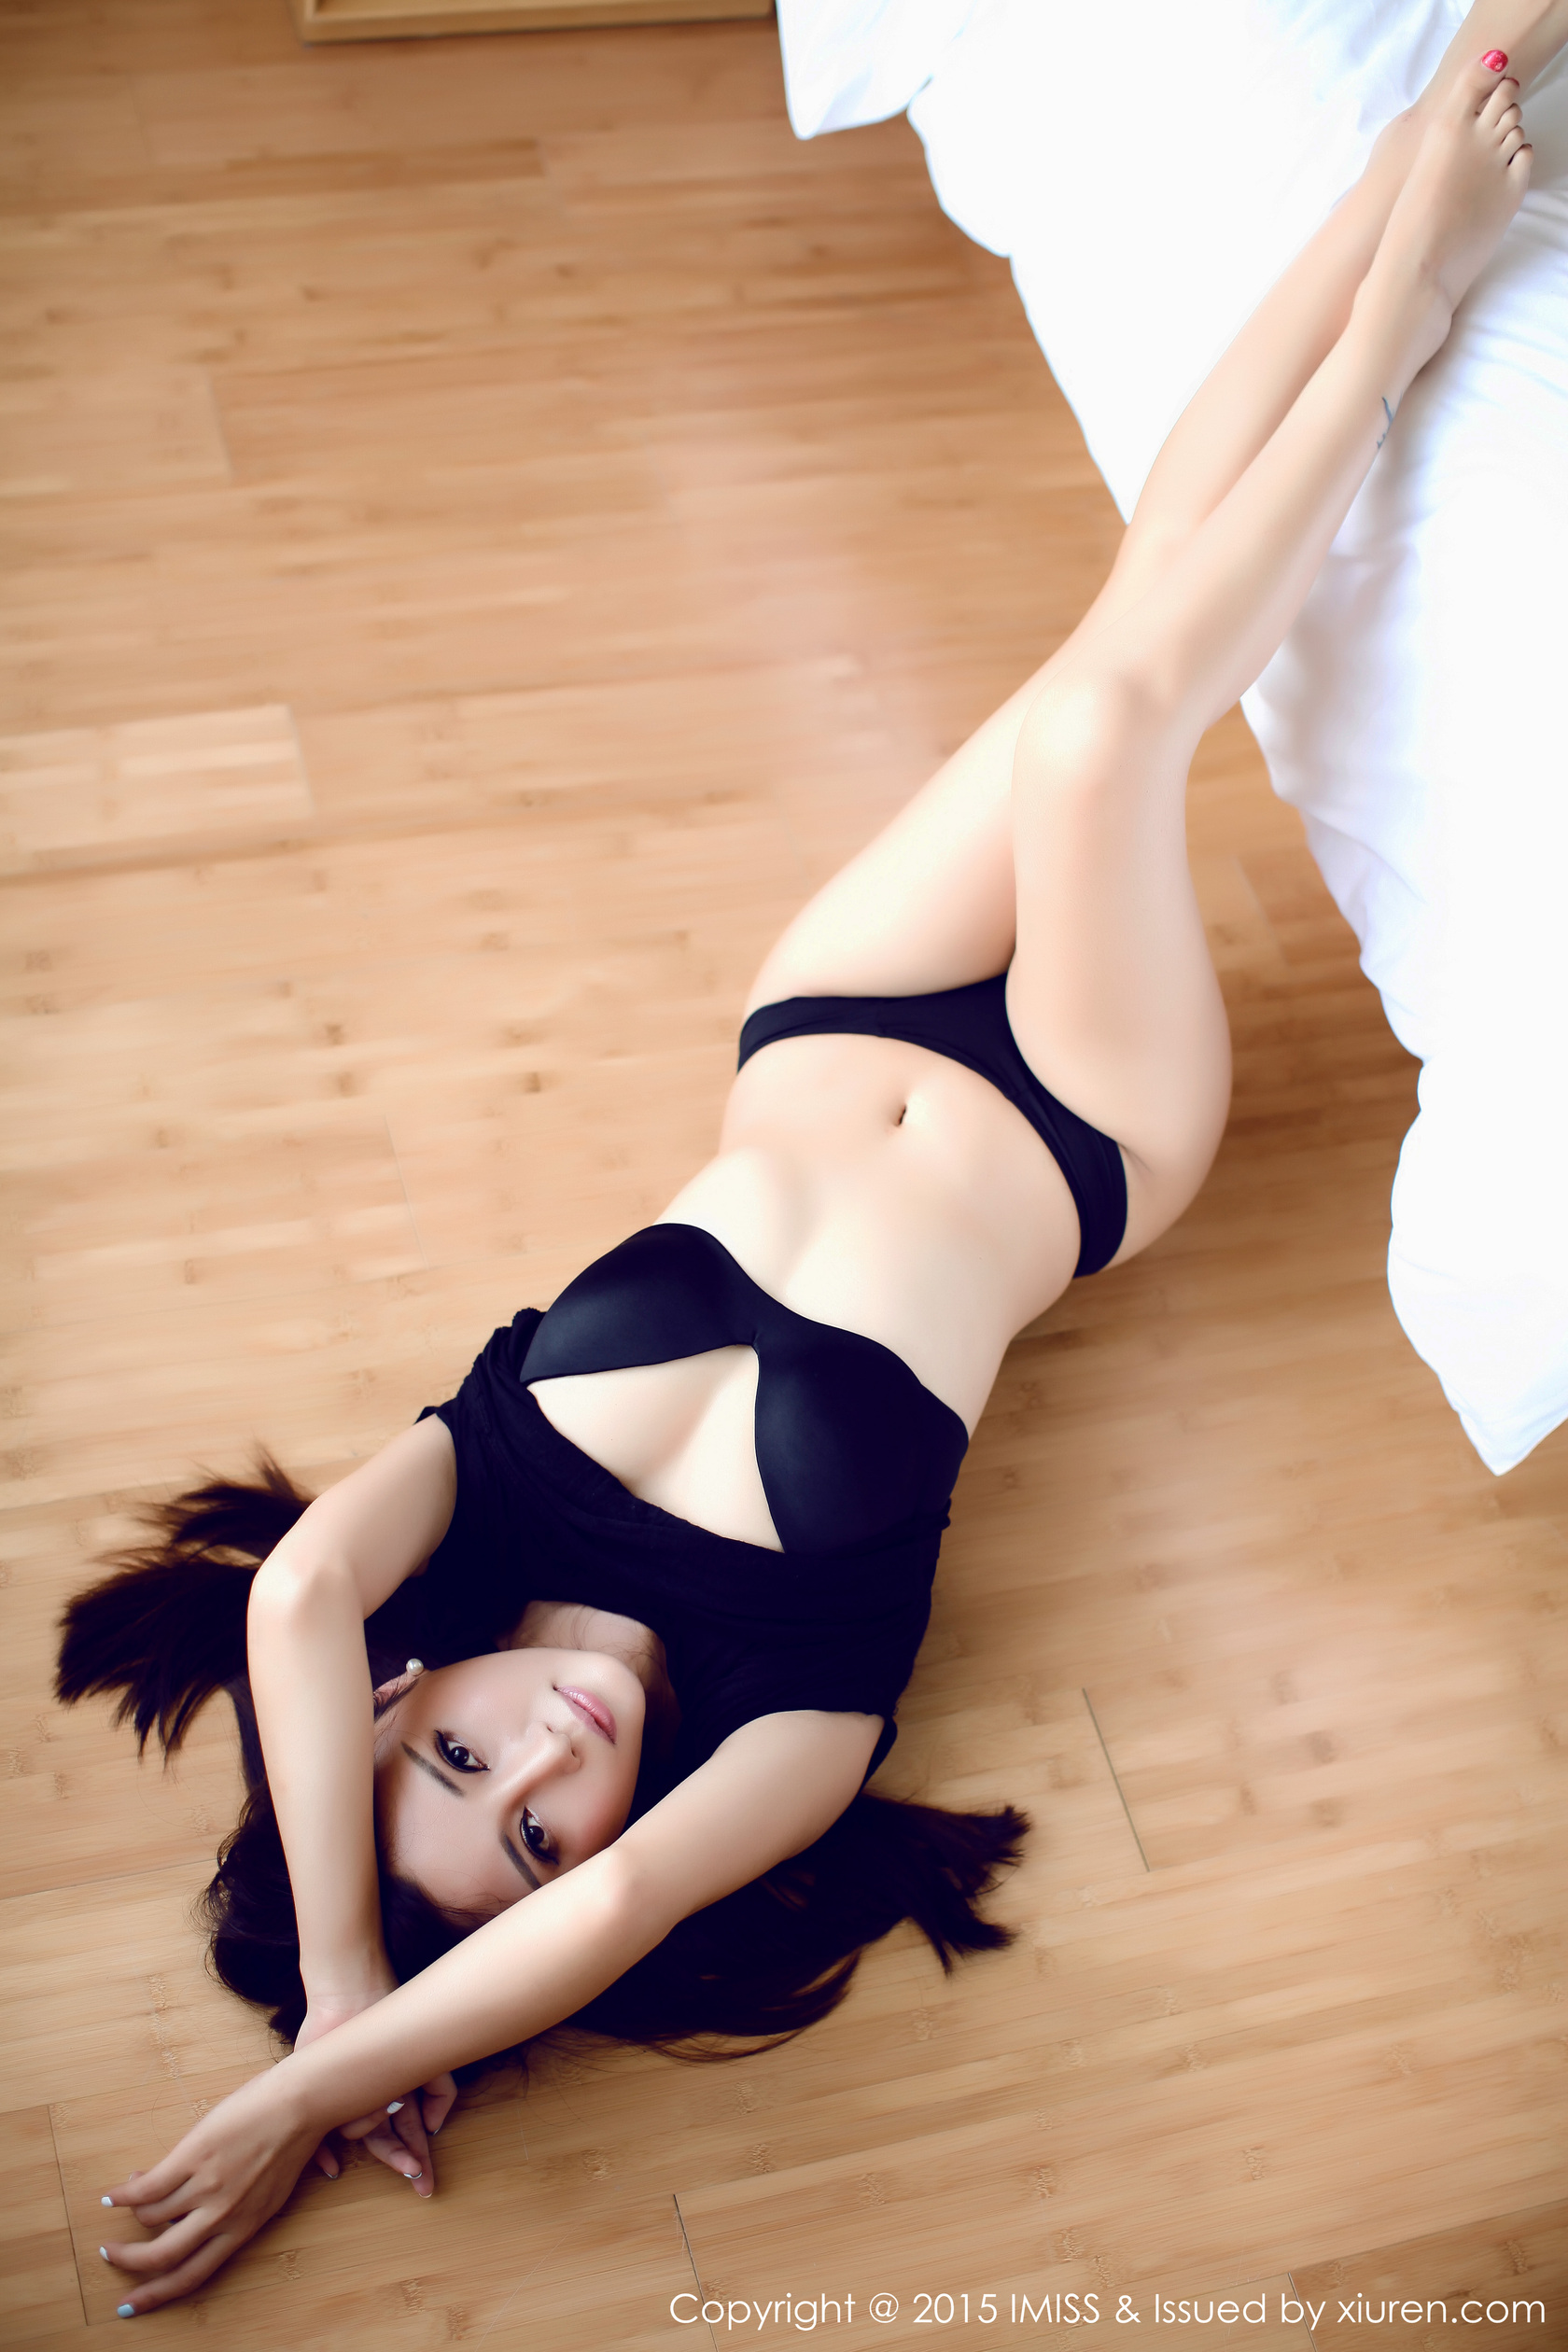 cool Chinese girl in sexy pose